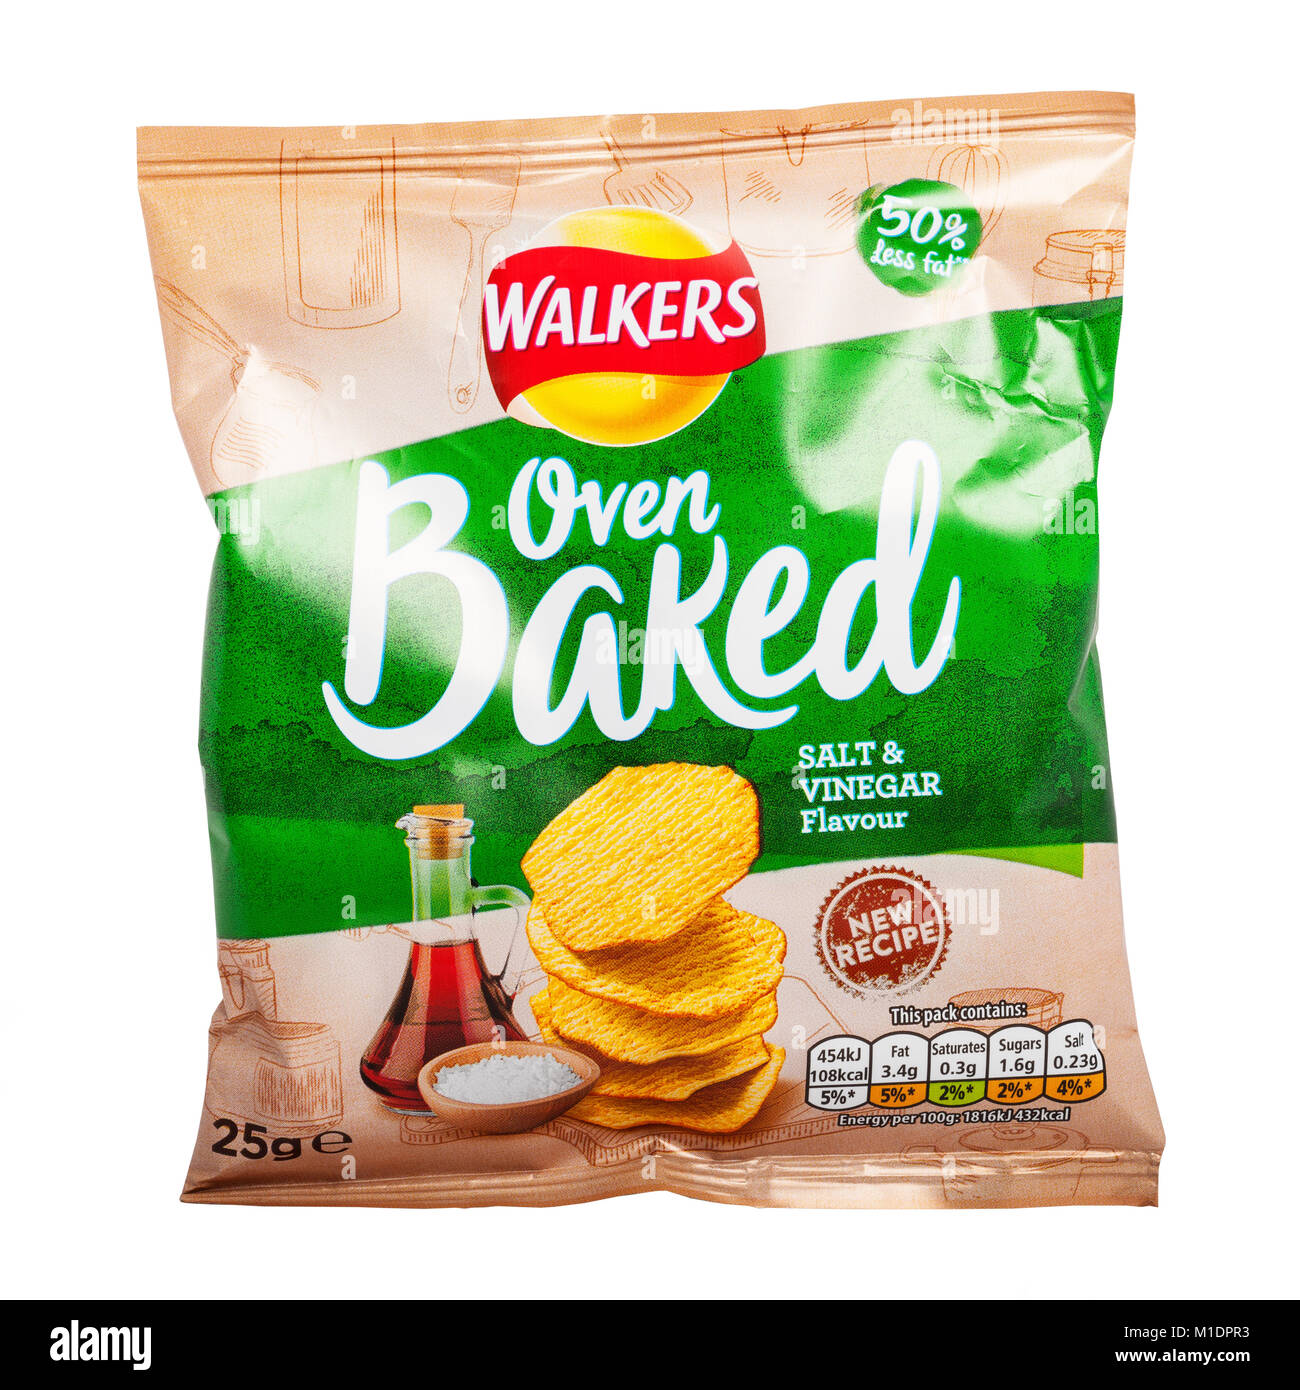 A packet of Walkers oven baked salt & vinegar flavour crisps with 50% less fat on a white background - Stock Image